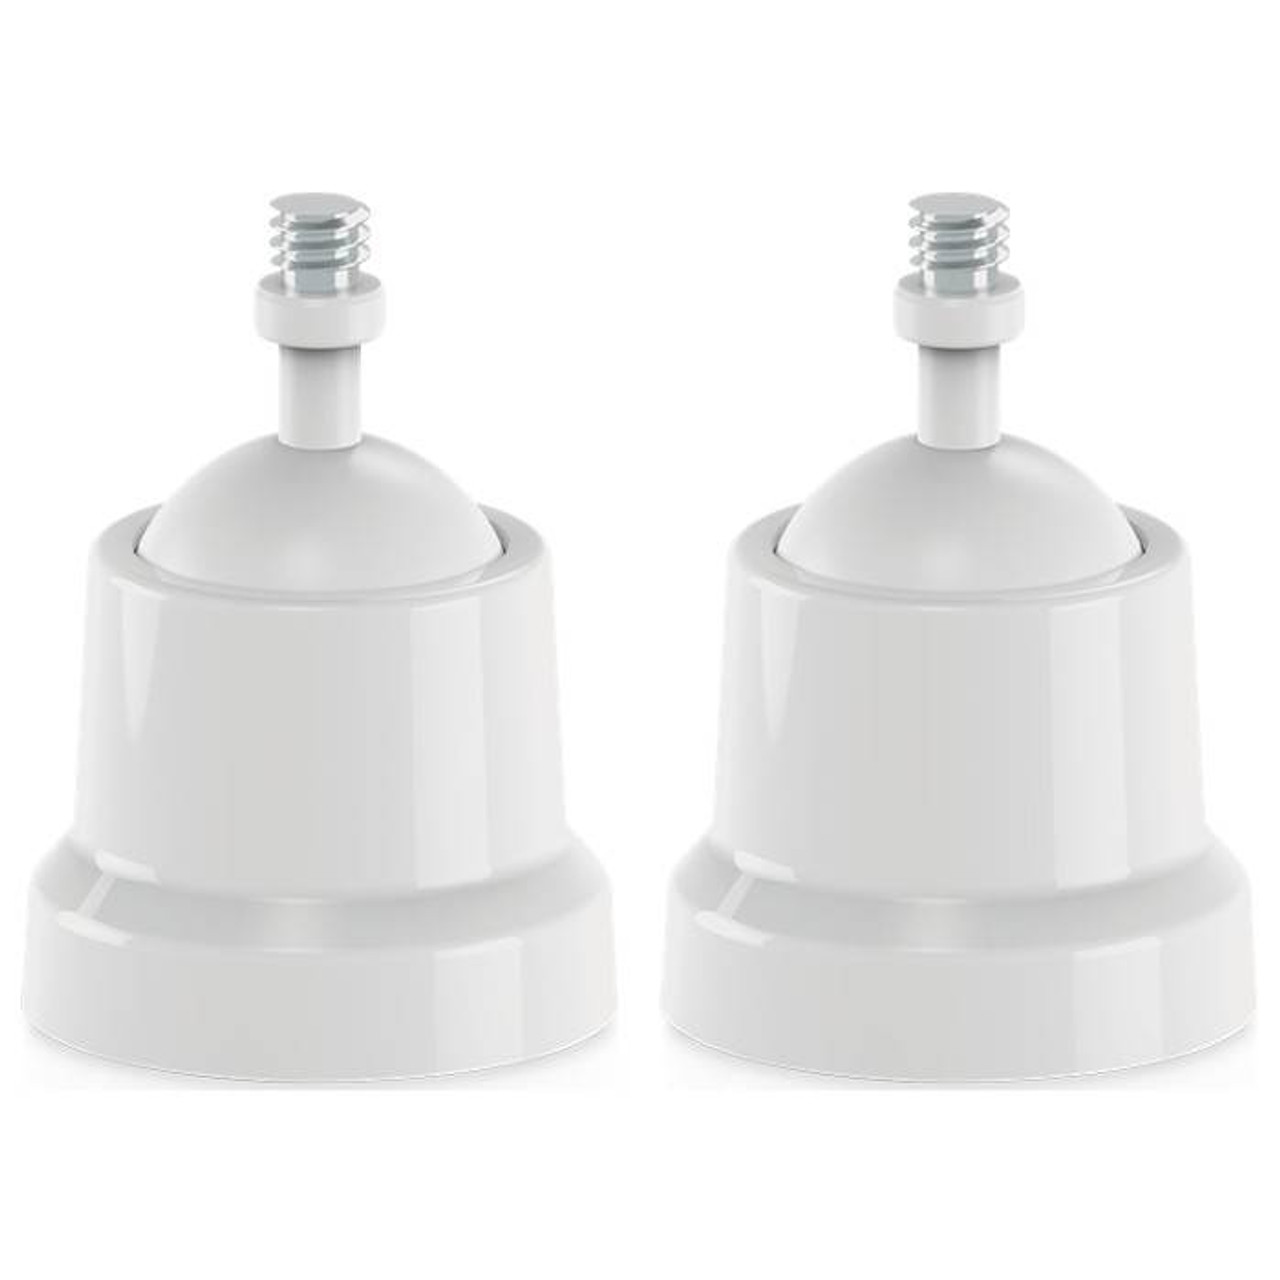 Image for Arlo Pro VMA4000 Outdoor mount (Pack of two) - White CX Computer Superstore